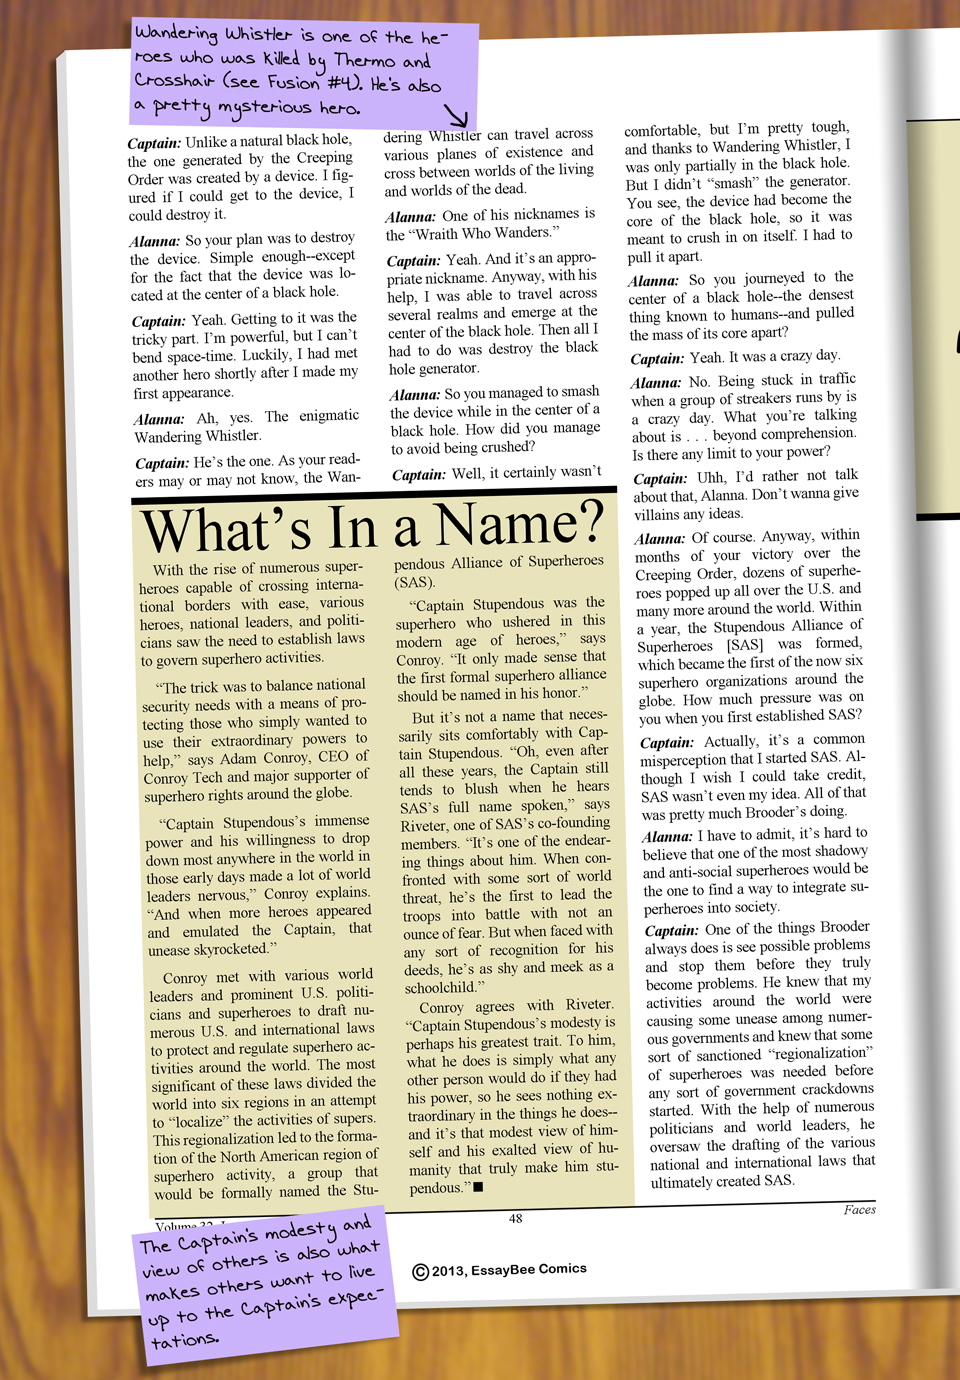 Interleude--Faces Magazine Interview 2 Page 05